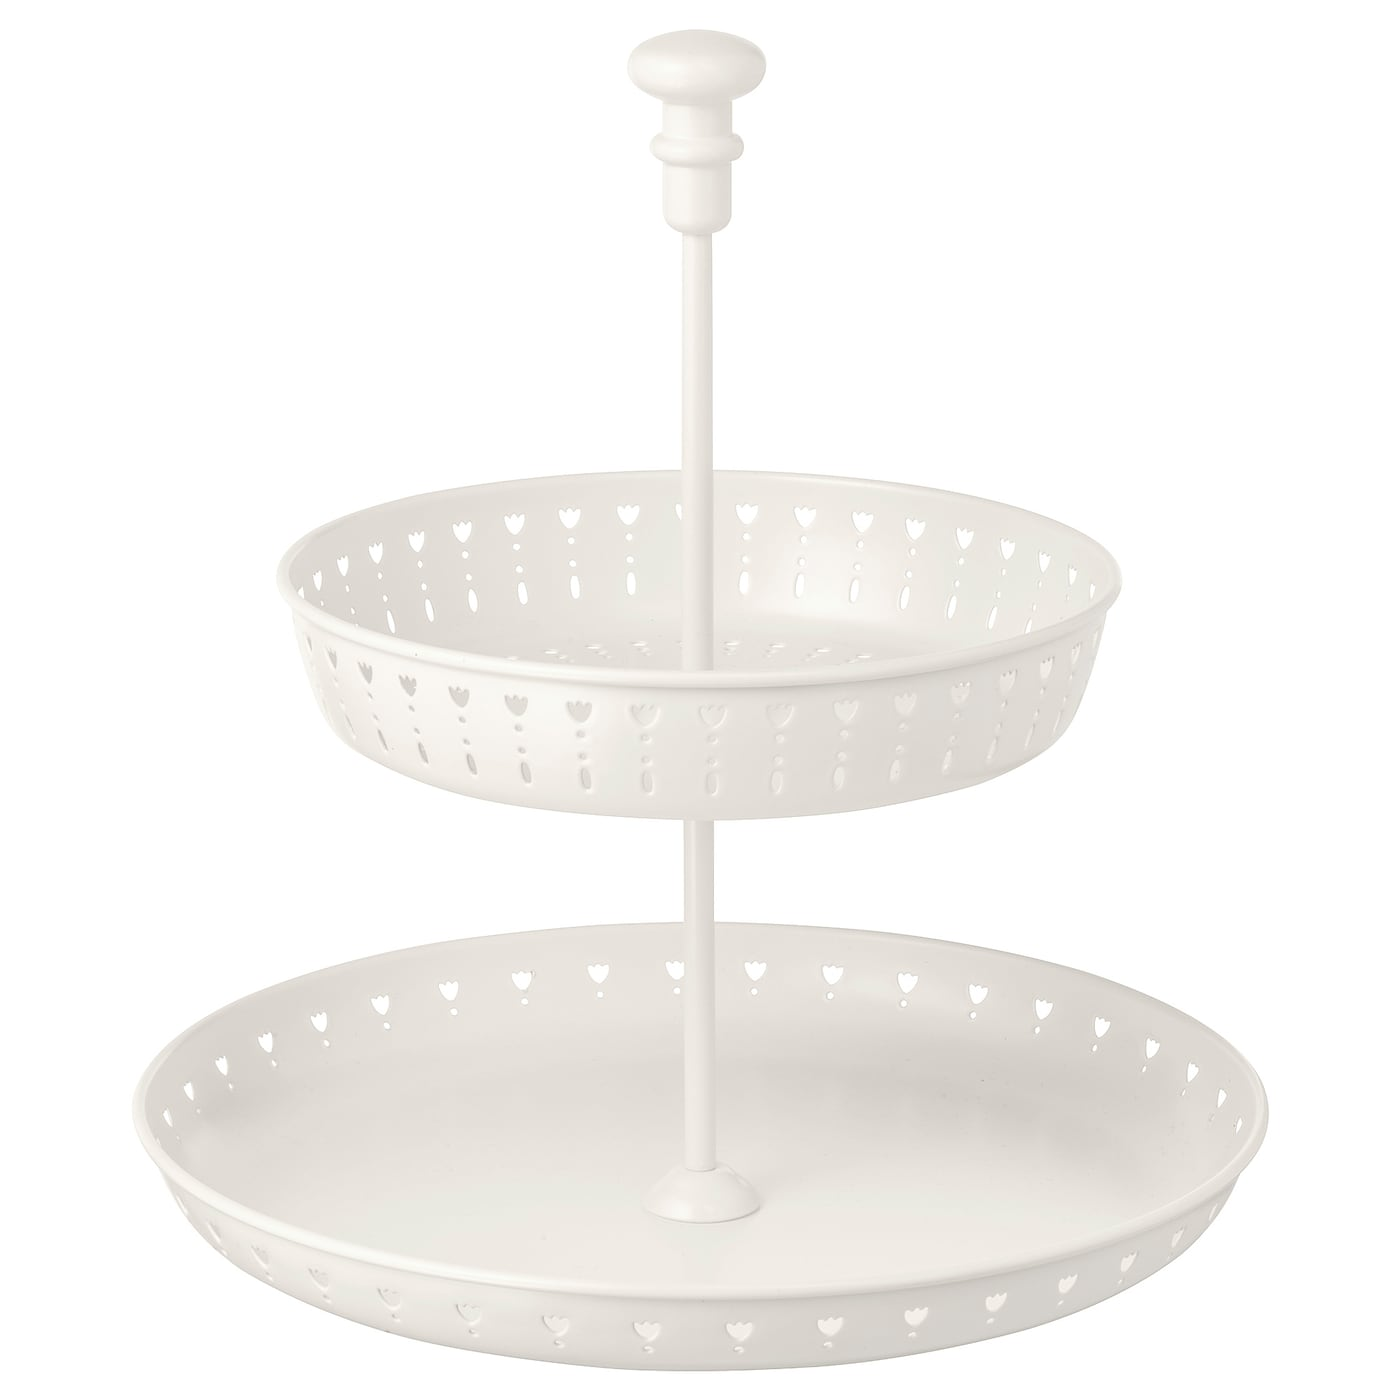 IKEA GARNERA serving stand, two tiers